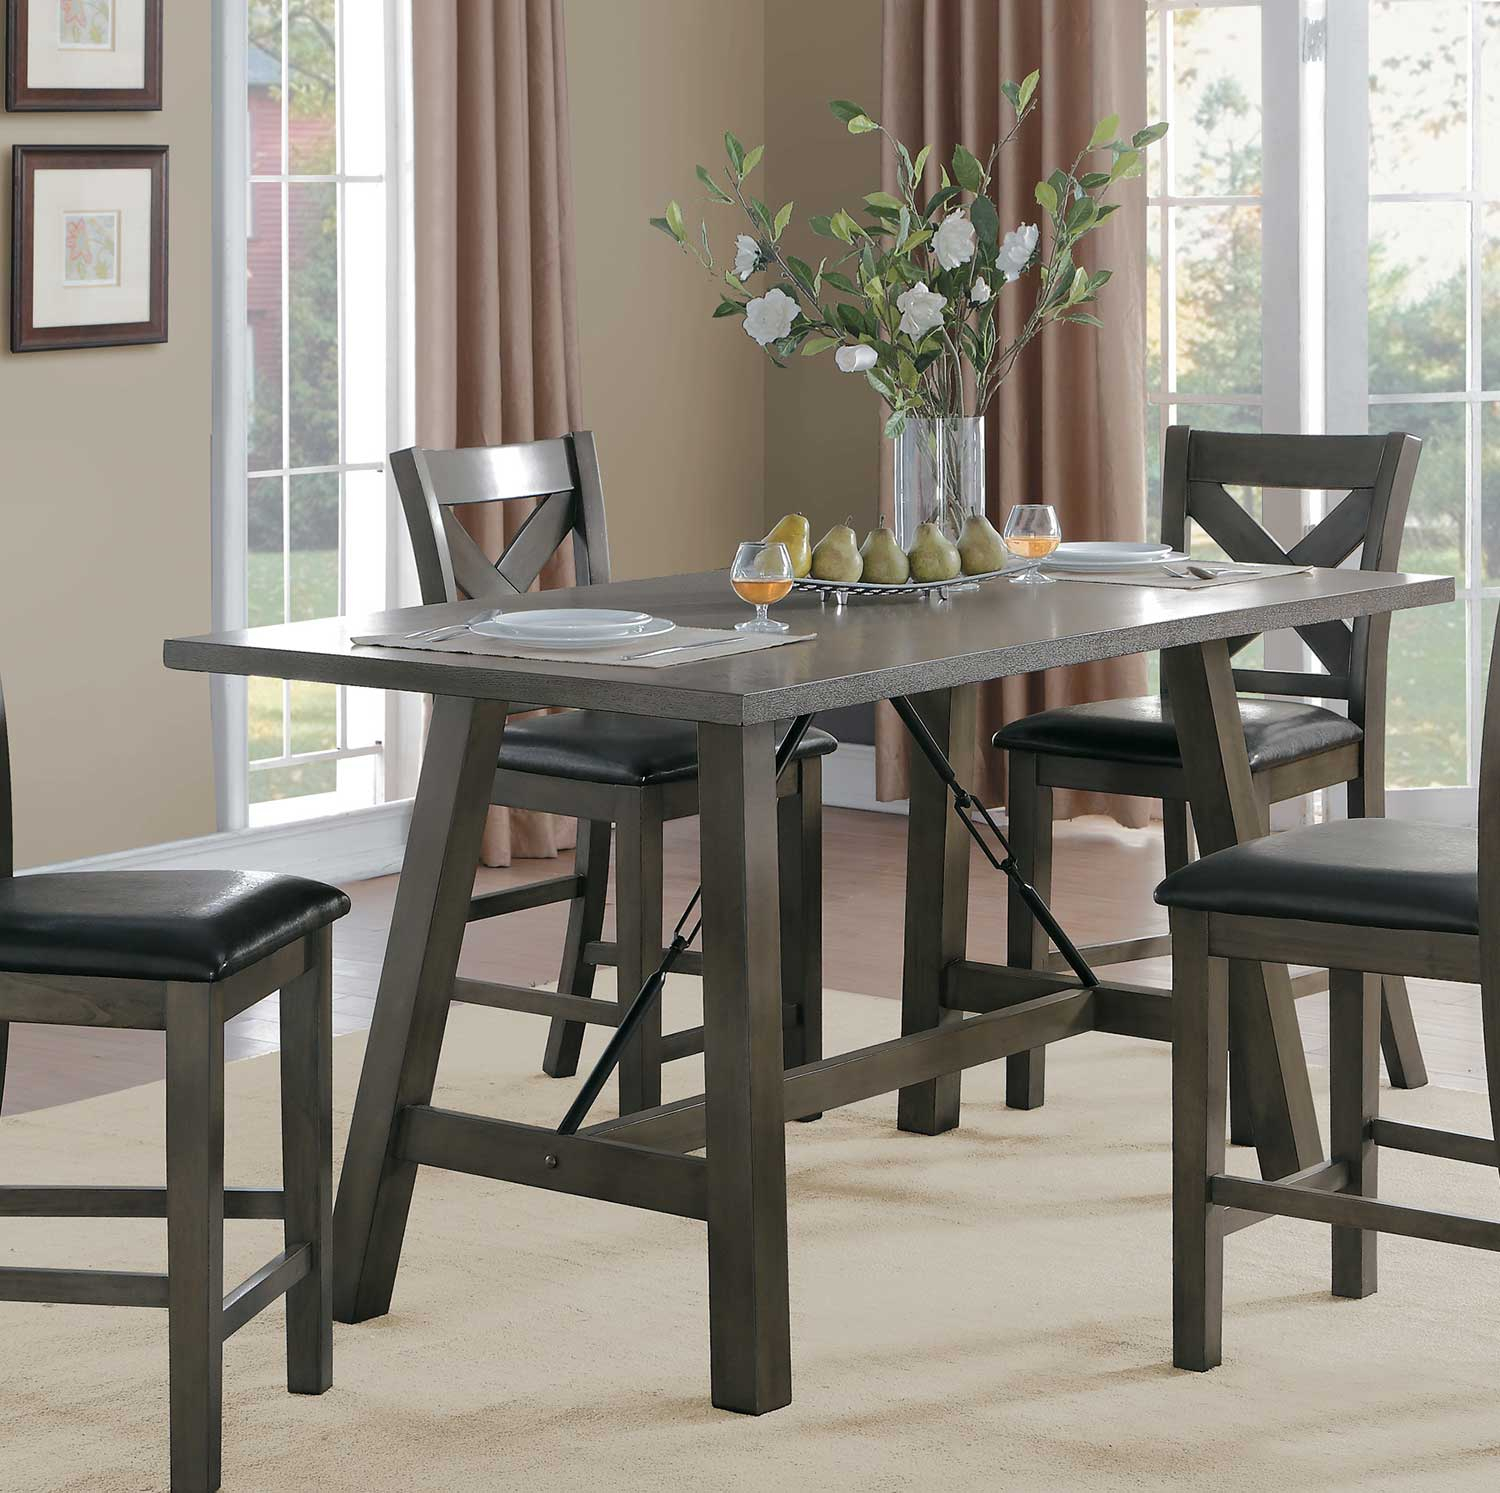 Homelegance Seaford Rectangular Counter Height Dining In Most Recent Hearne Counter Height Dining Tables (View 15 of 15)